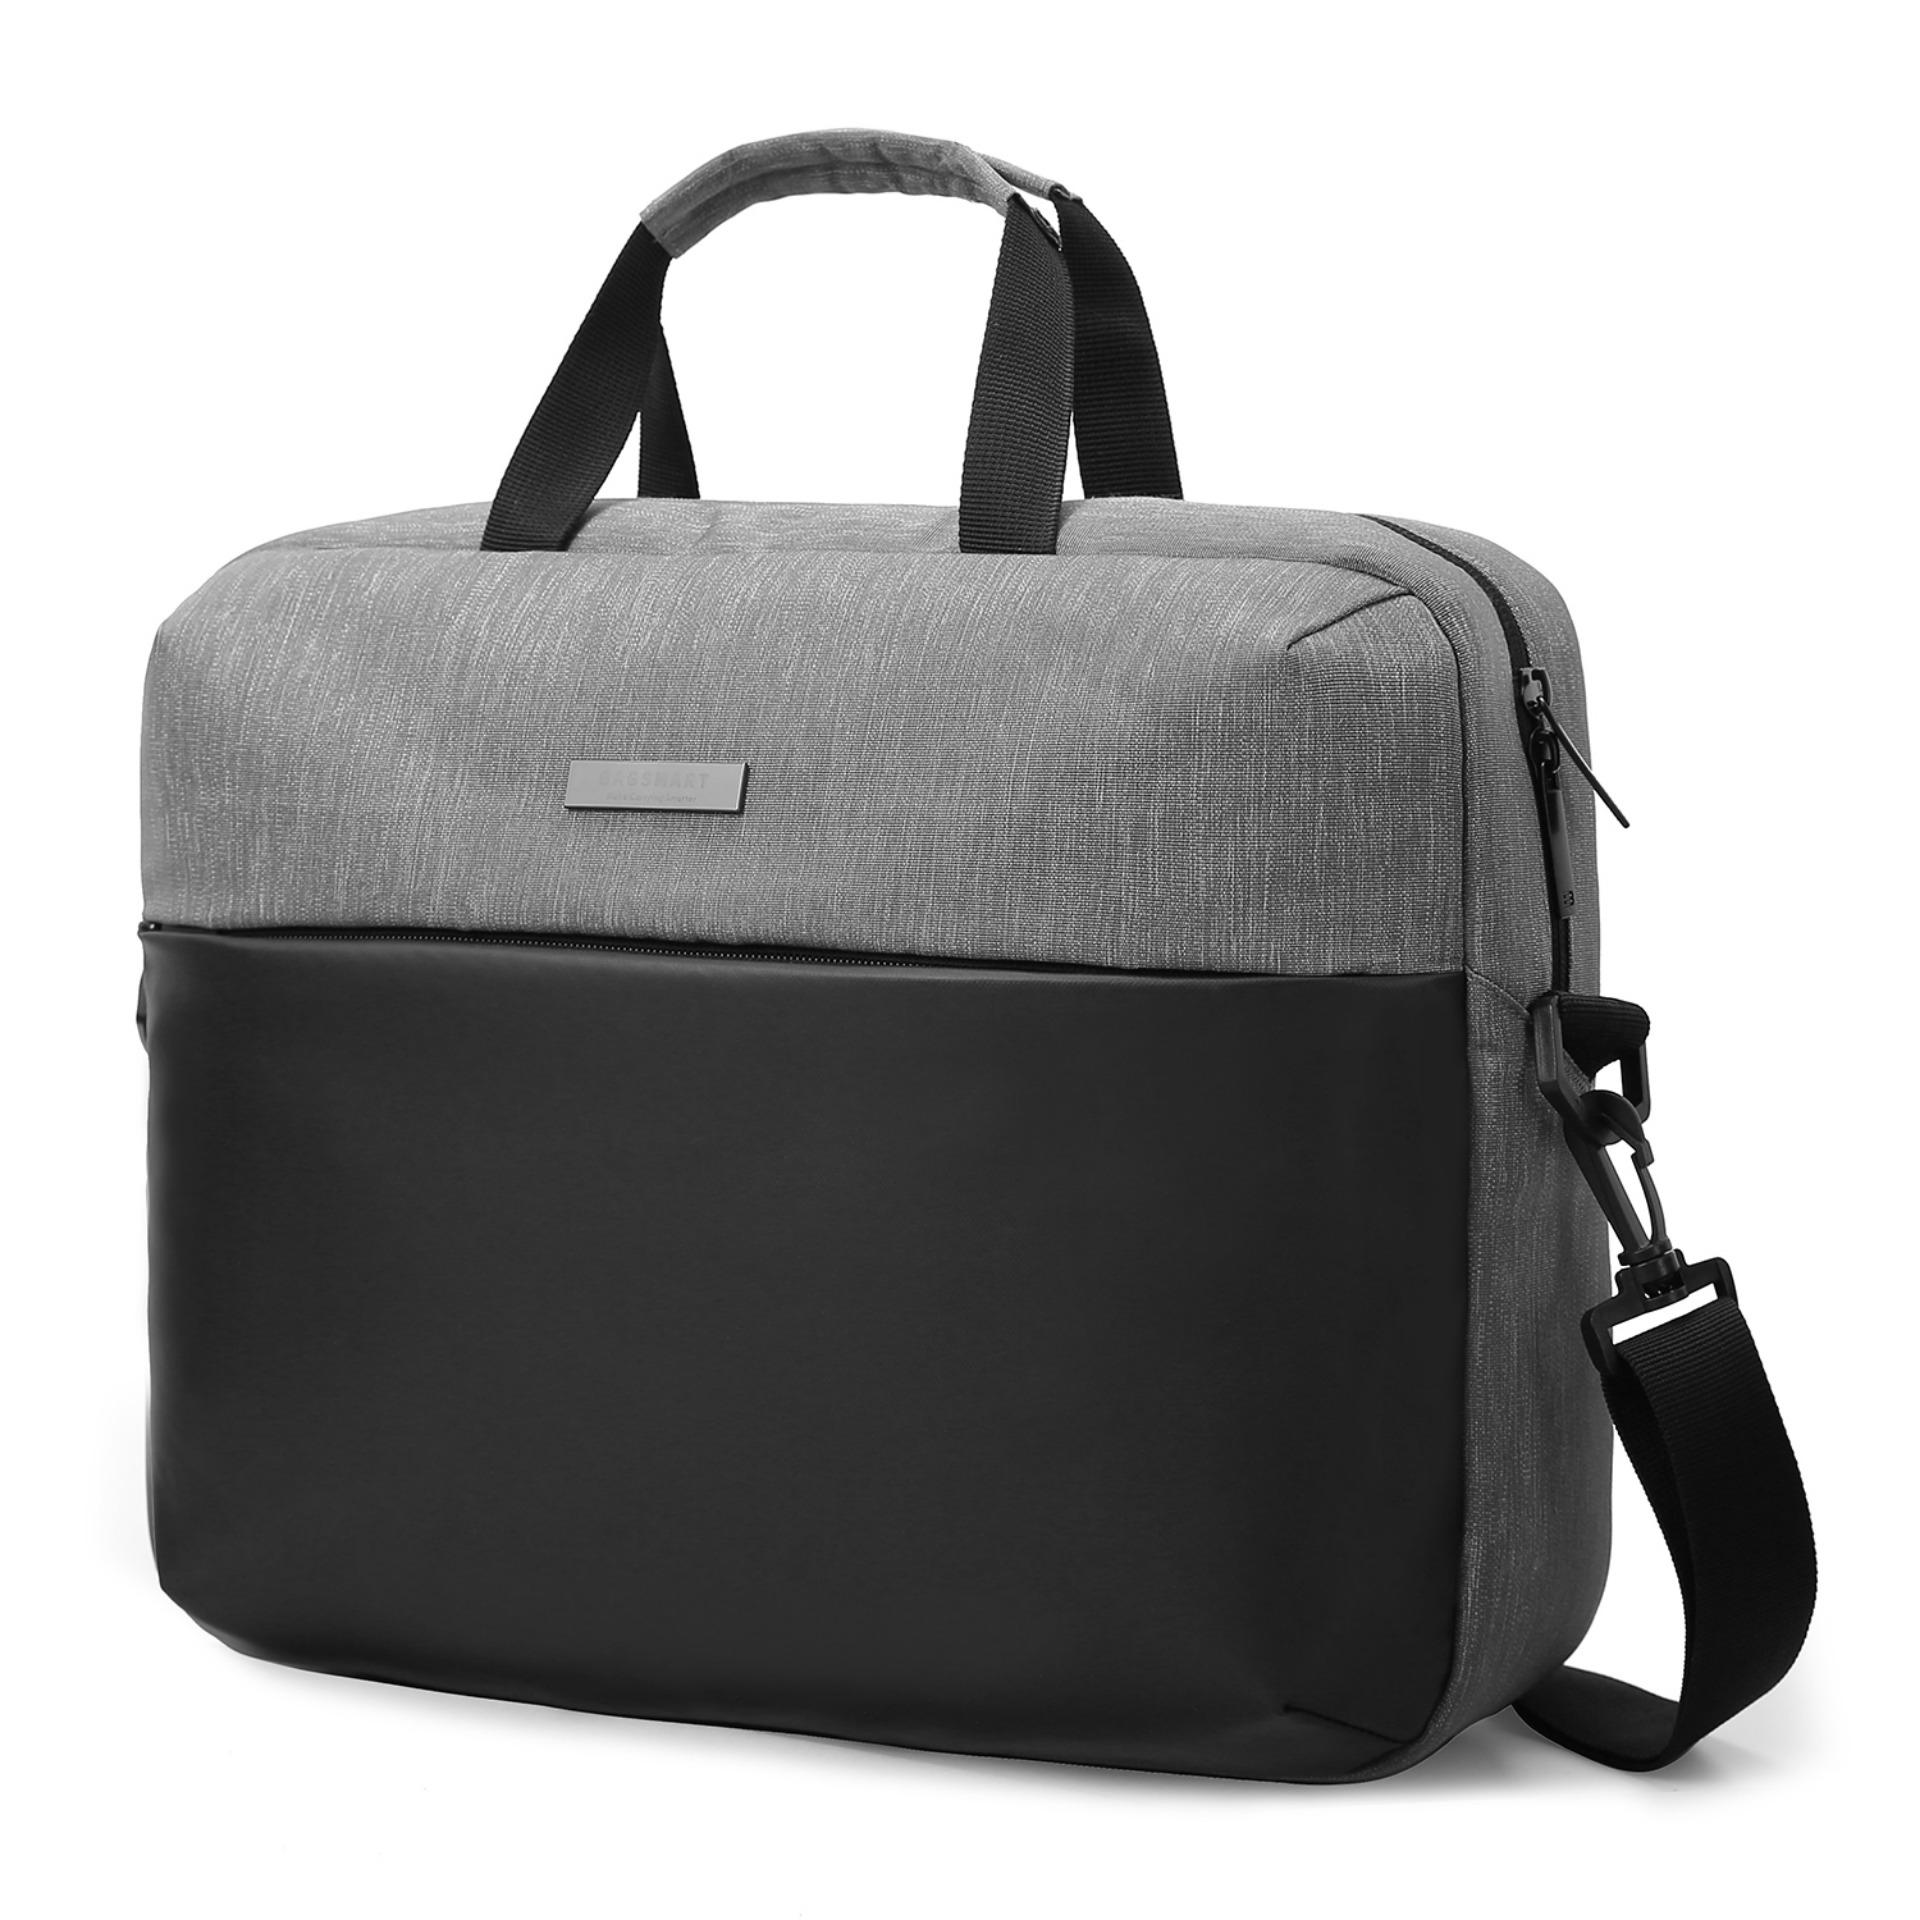 4746825fb4 BAGSMART BM0140011A008 LAPTOP BAG BRIEFCASE SHOULDER MESSENGER BAG WATER  REPELLENT SATCHEL TABLET BUSSINESS CARRYING HANDBAG